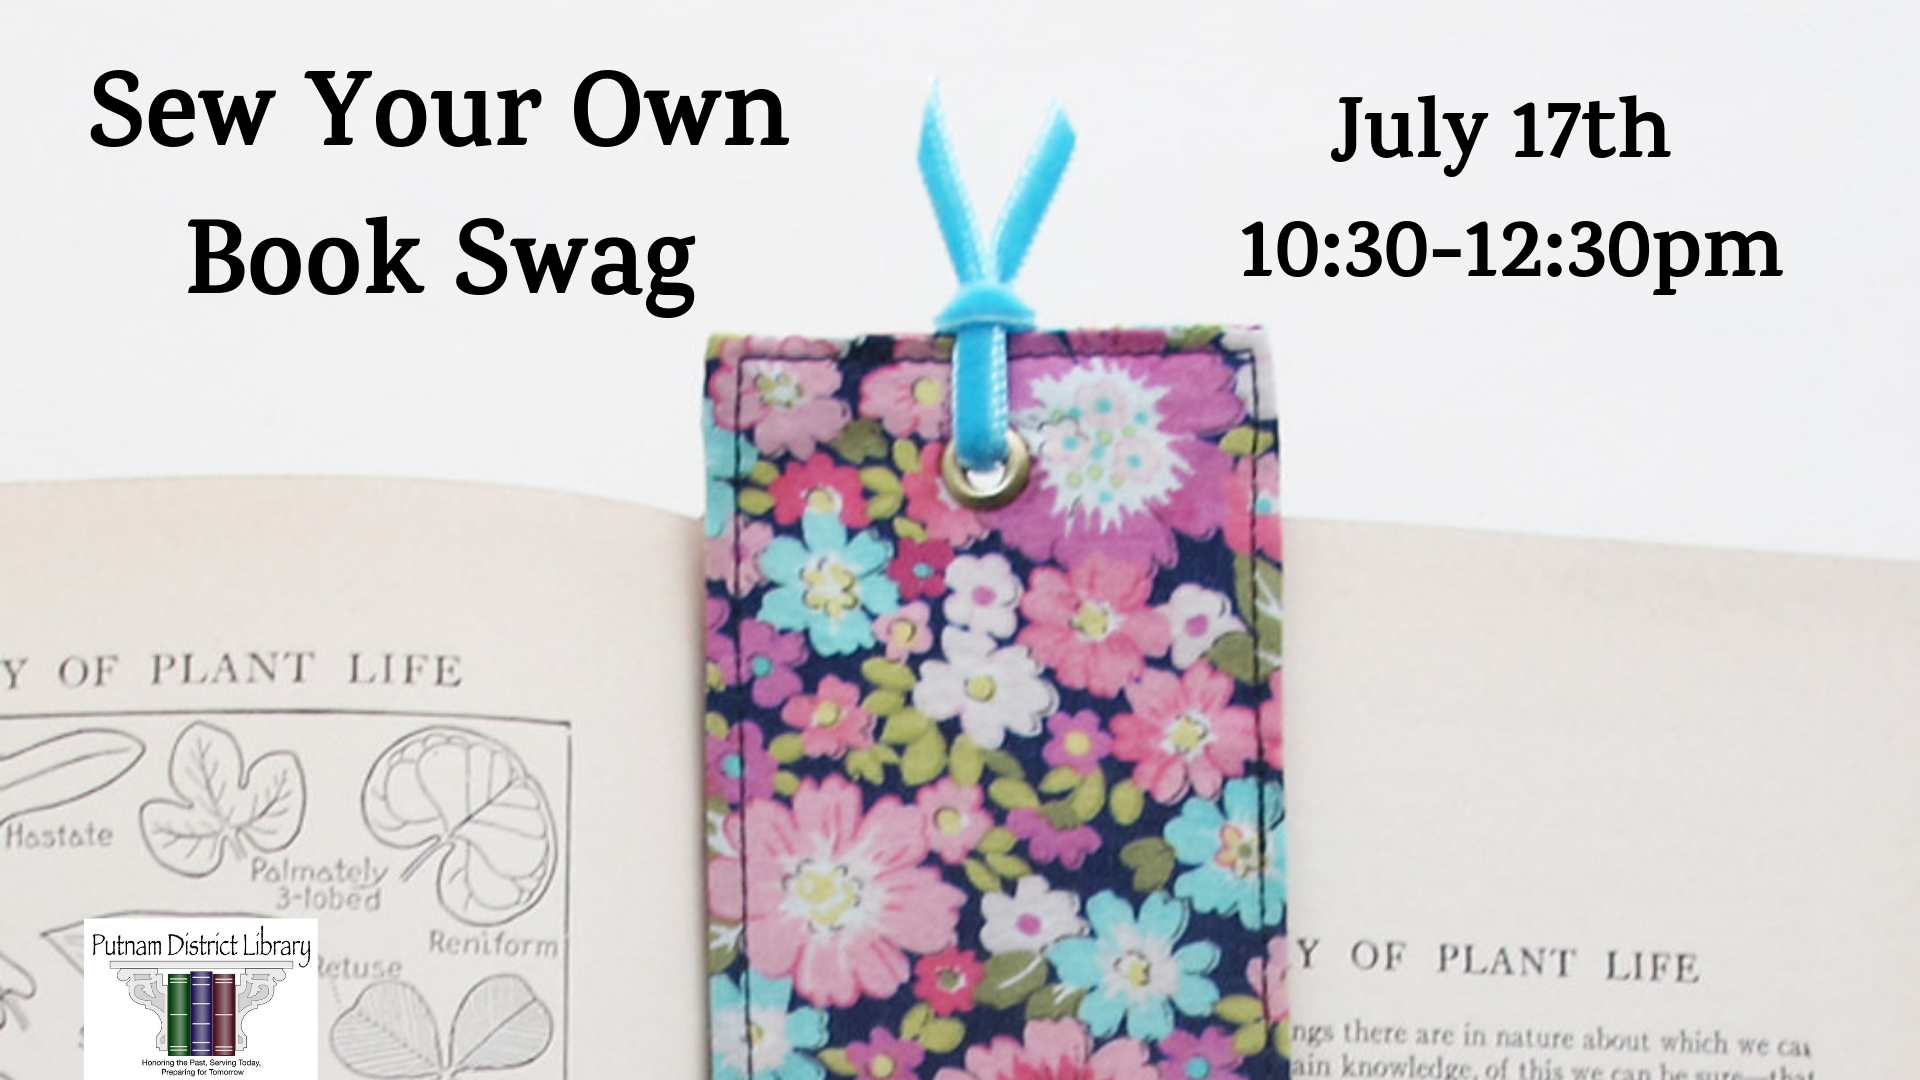 Sew Your Own Book Swag